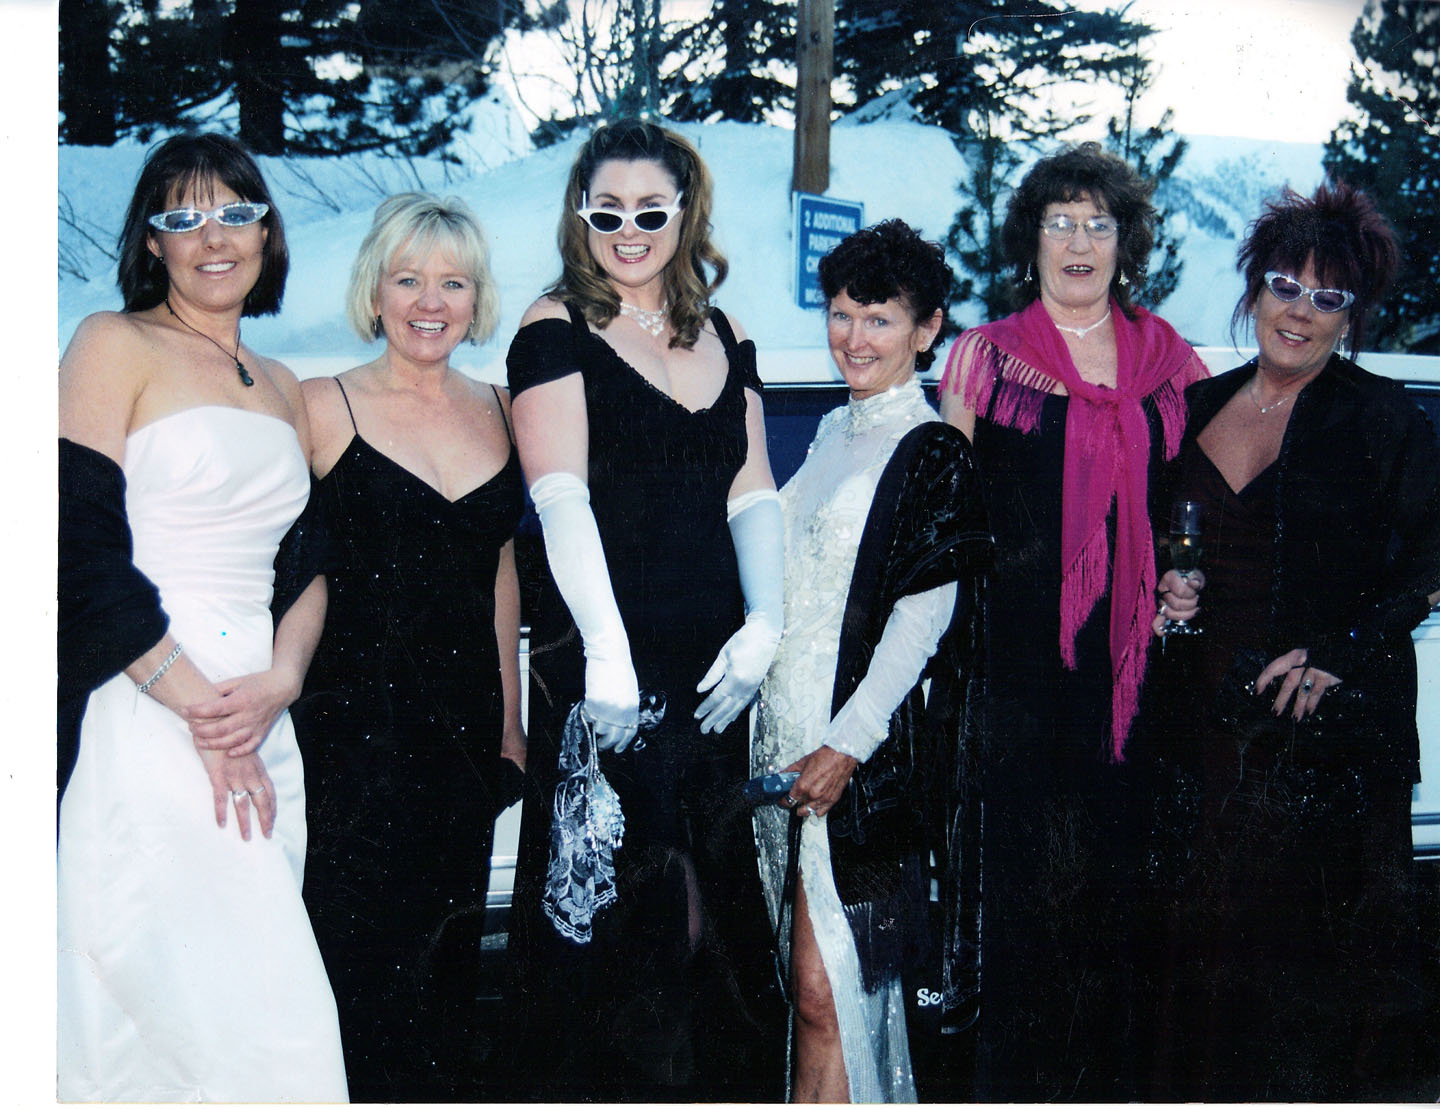 From one of Sue Ebersold's infamous Oscar parties, circa 2005. From left: Renee Prouse, Terry Englehardt, Therese Tullo, Sandee Wilson, Marla Wiegand and Sue Ebersold. Photo courtesy: Sheet staff.